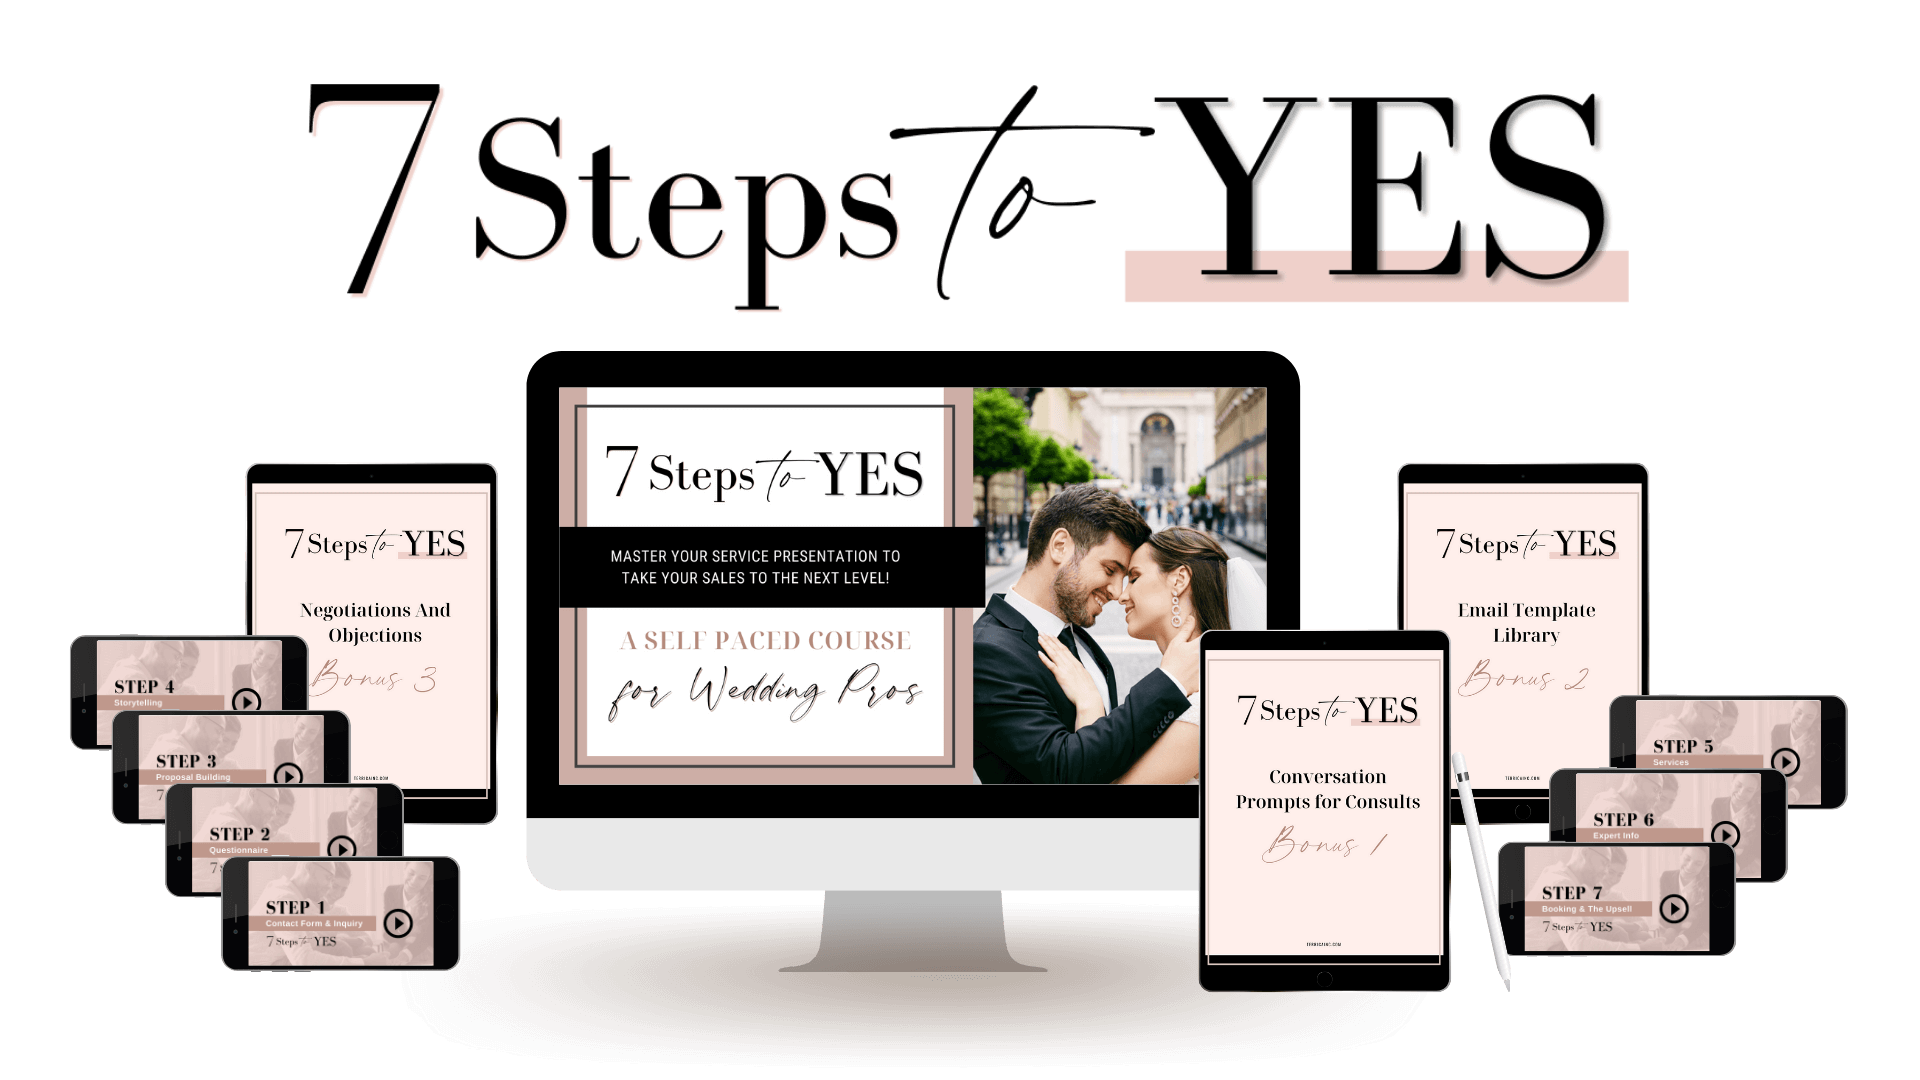 The 7 Steps To YES! Self Paced Sales Course for Wedding Pros